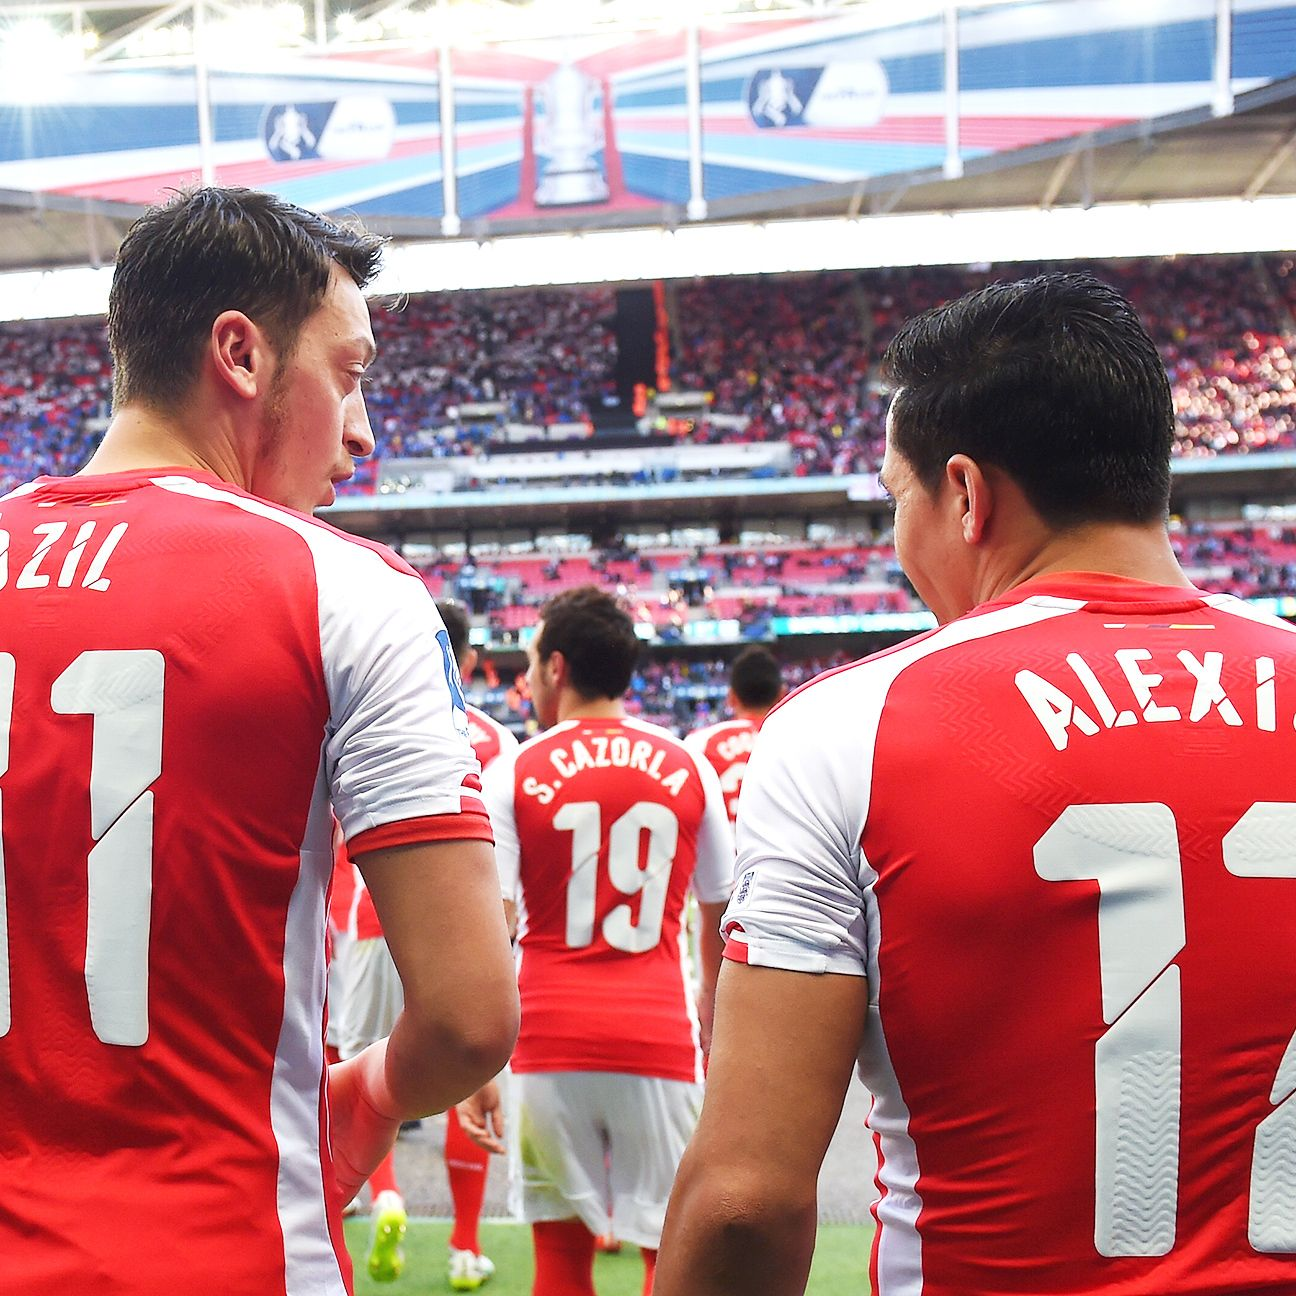 Mesut Ozil and Alexis Sanchez teamed up to give Reading trouble on Saturday.